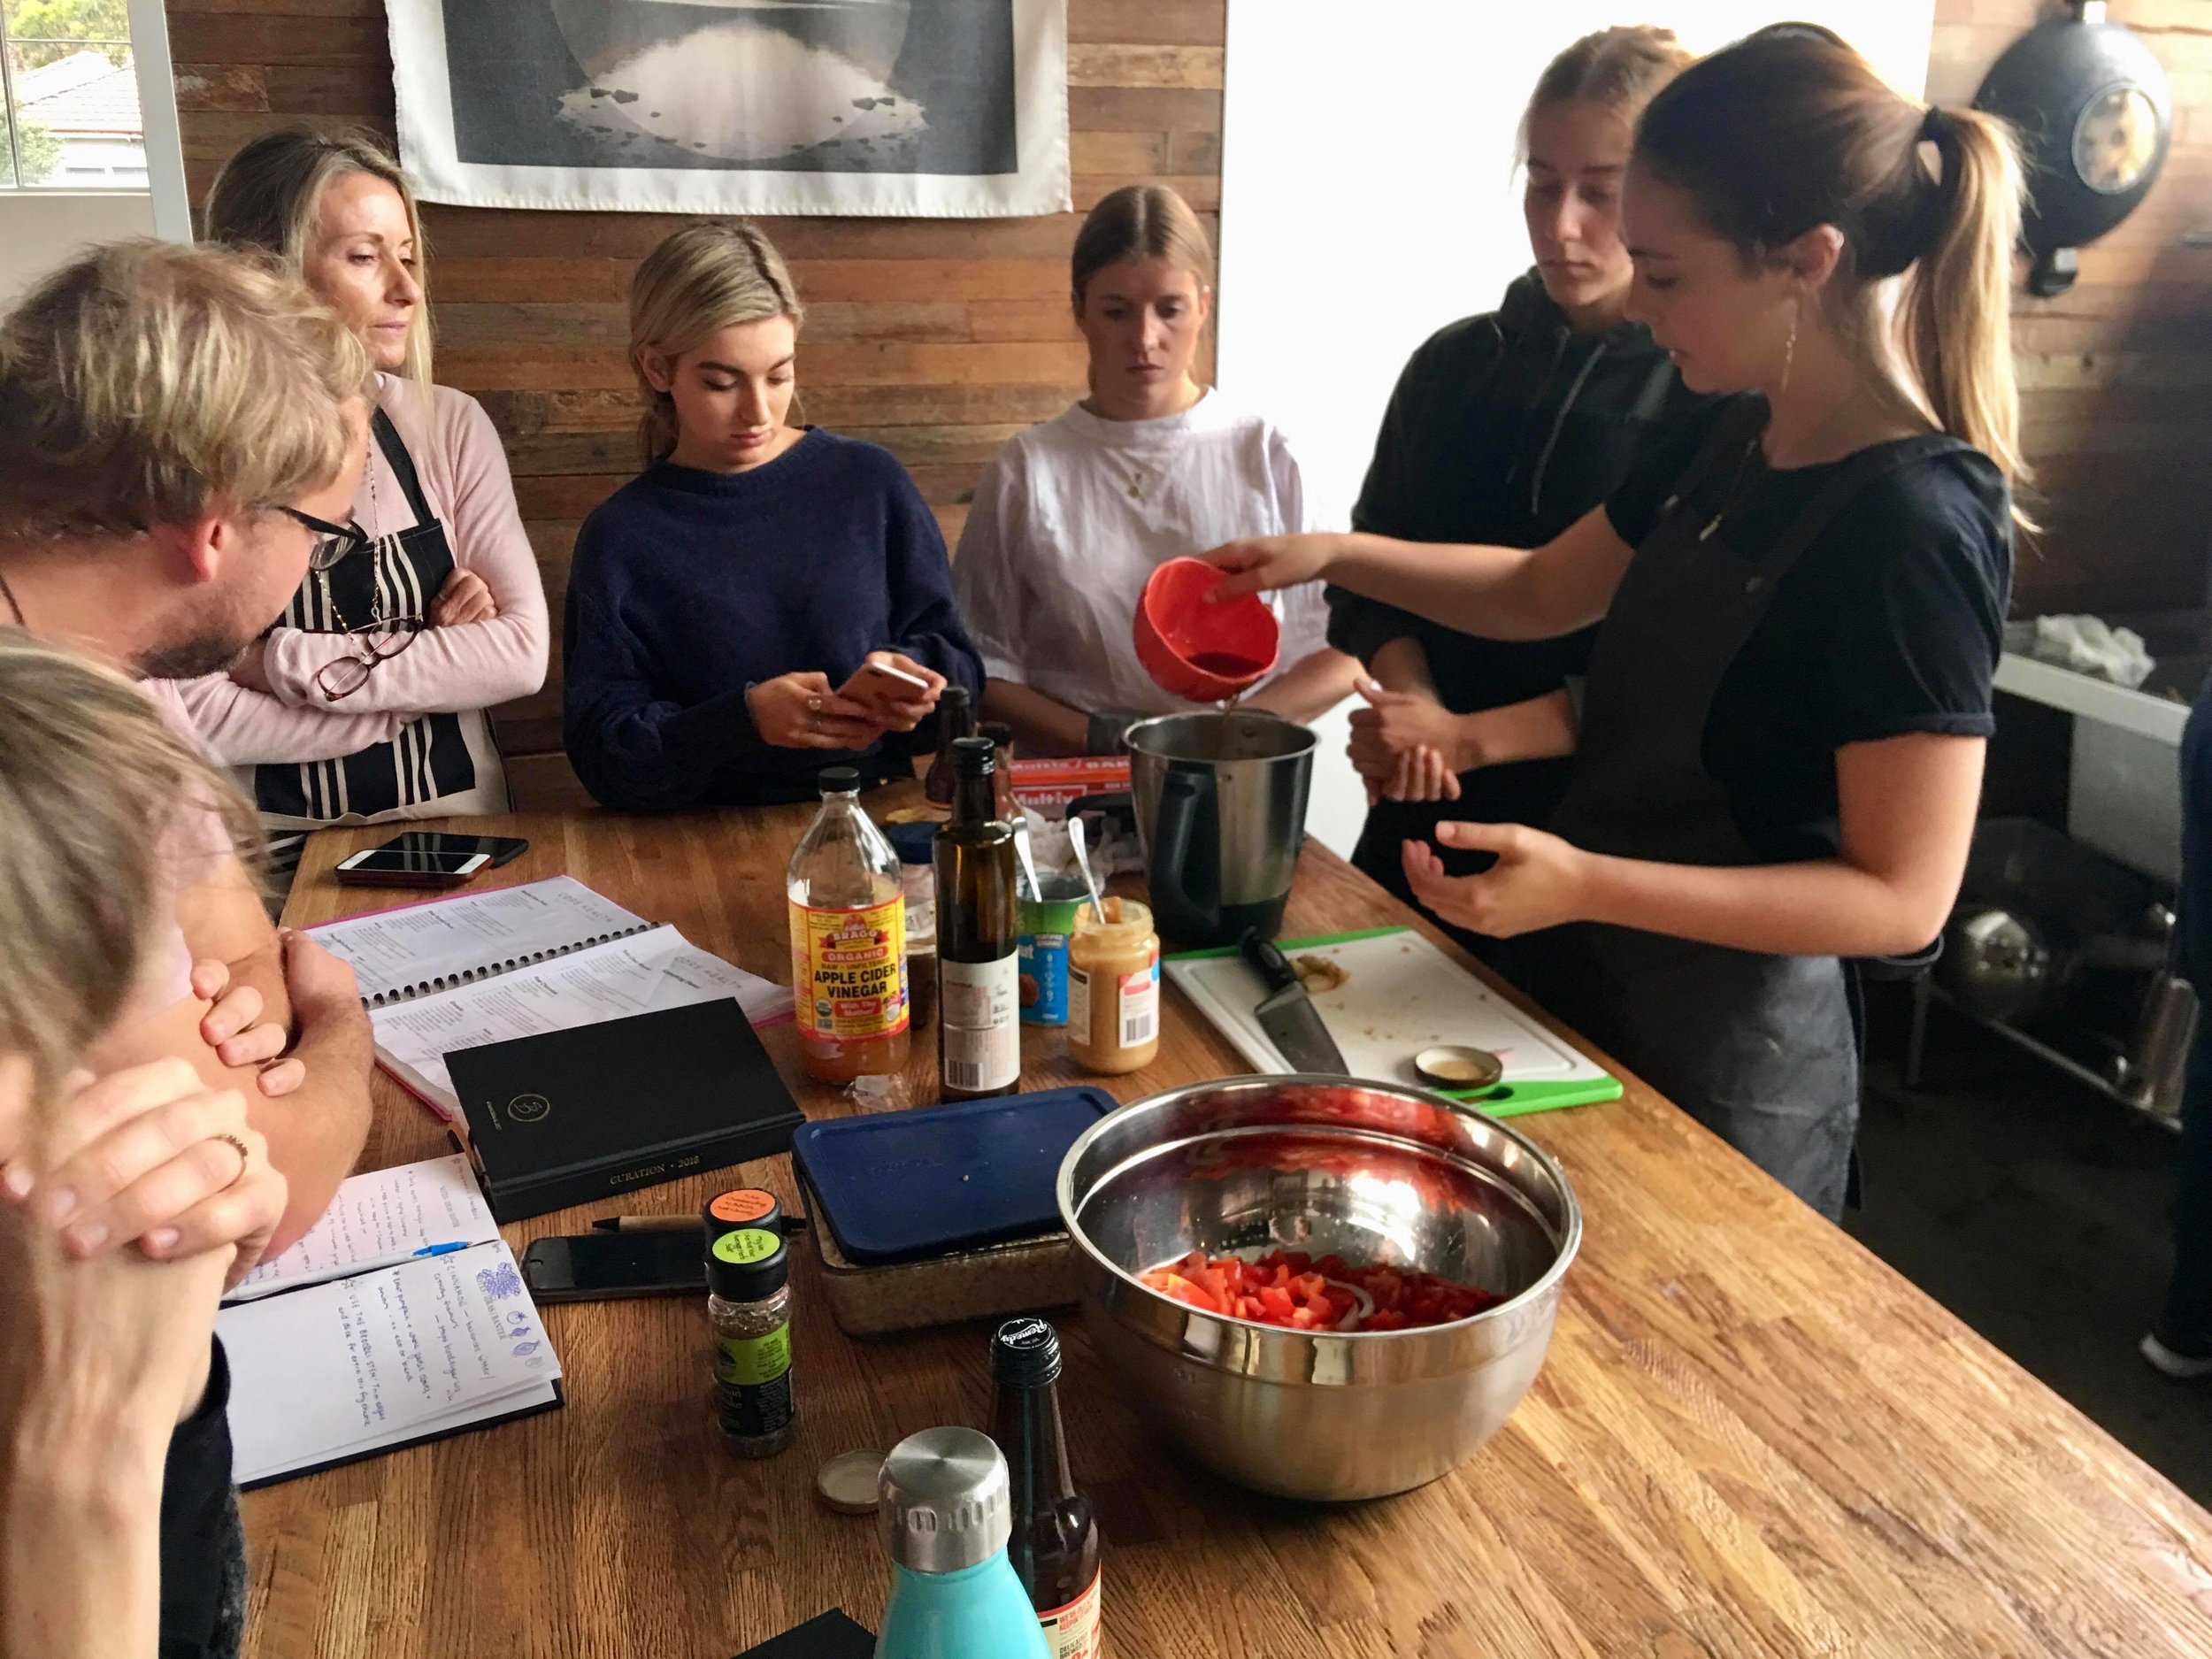 Corporate Cooking Workshops - A fun and involved way for teams to come together, build healthy eating practices and make conscious time to nourish themselves.